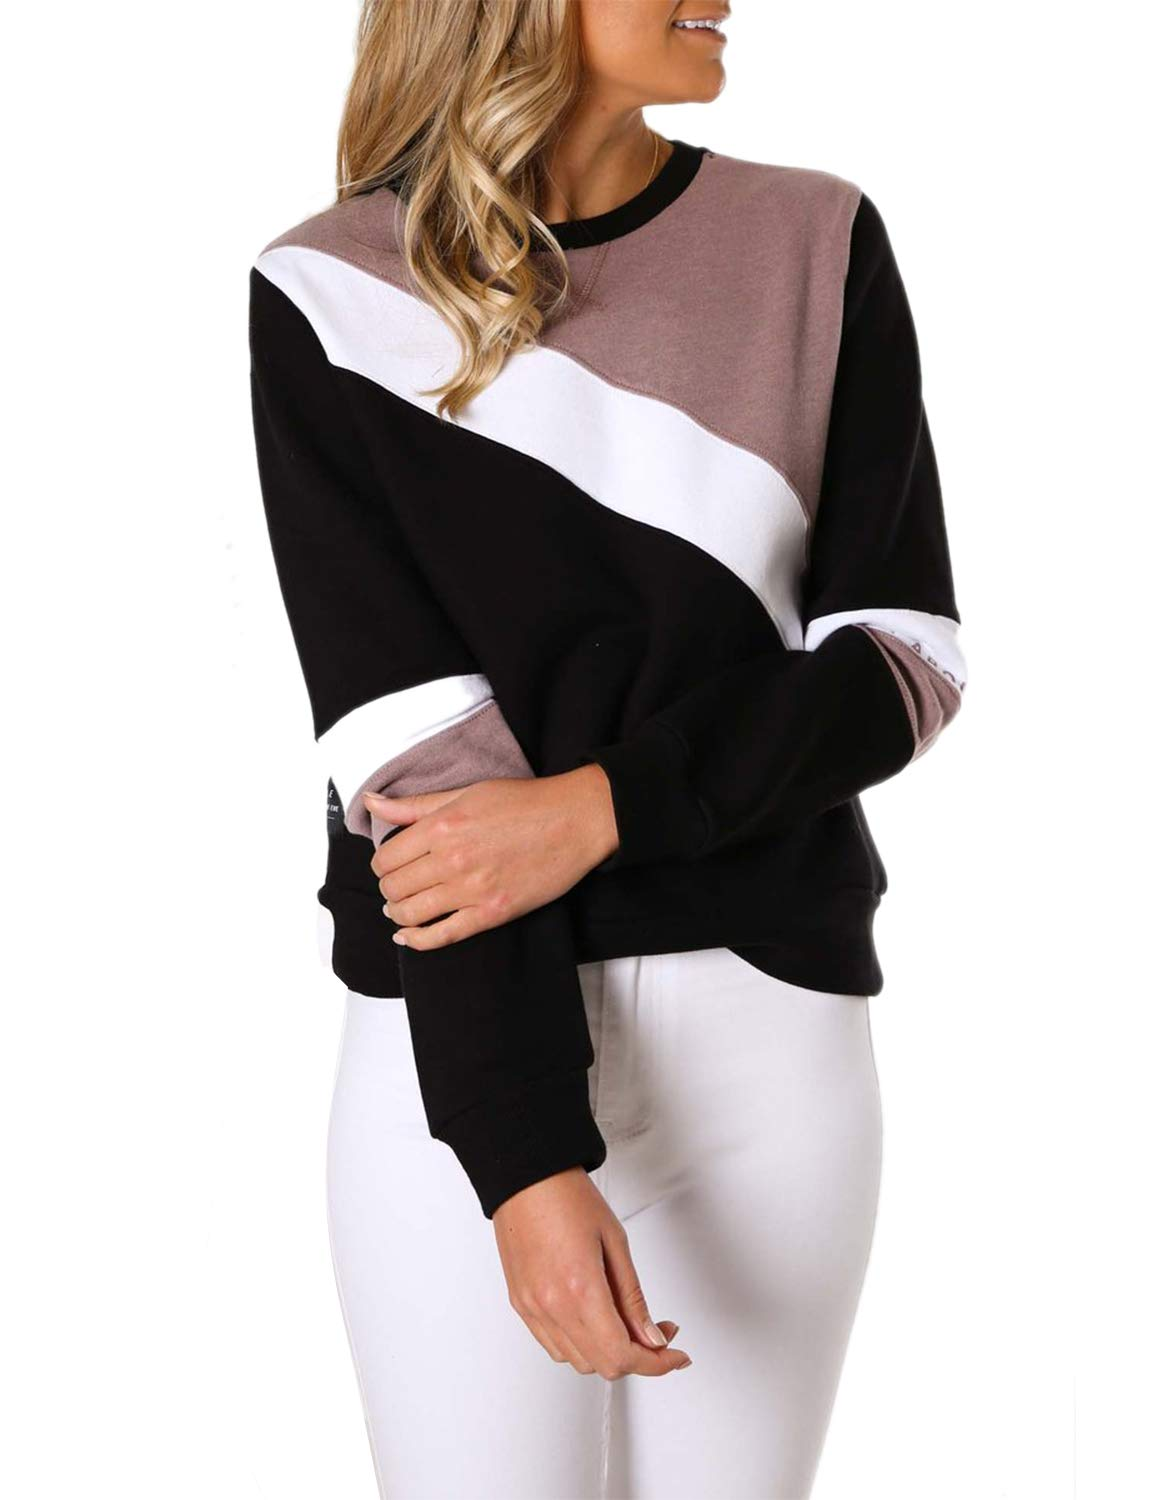 BMJL Women's Soft Blouse Color Block Pullover Casual Top Round Neck Sweatshirt